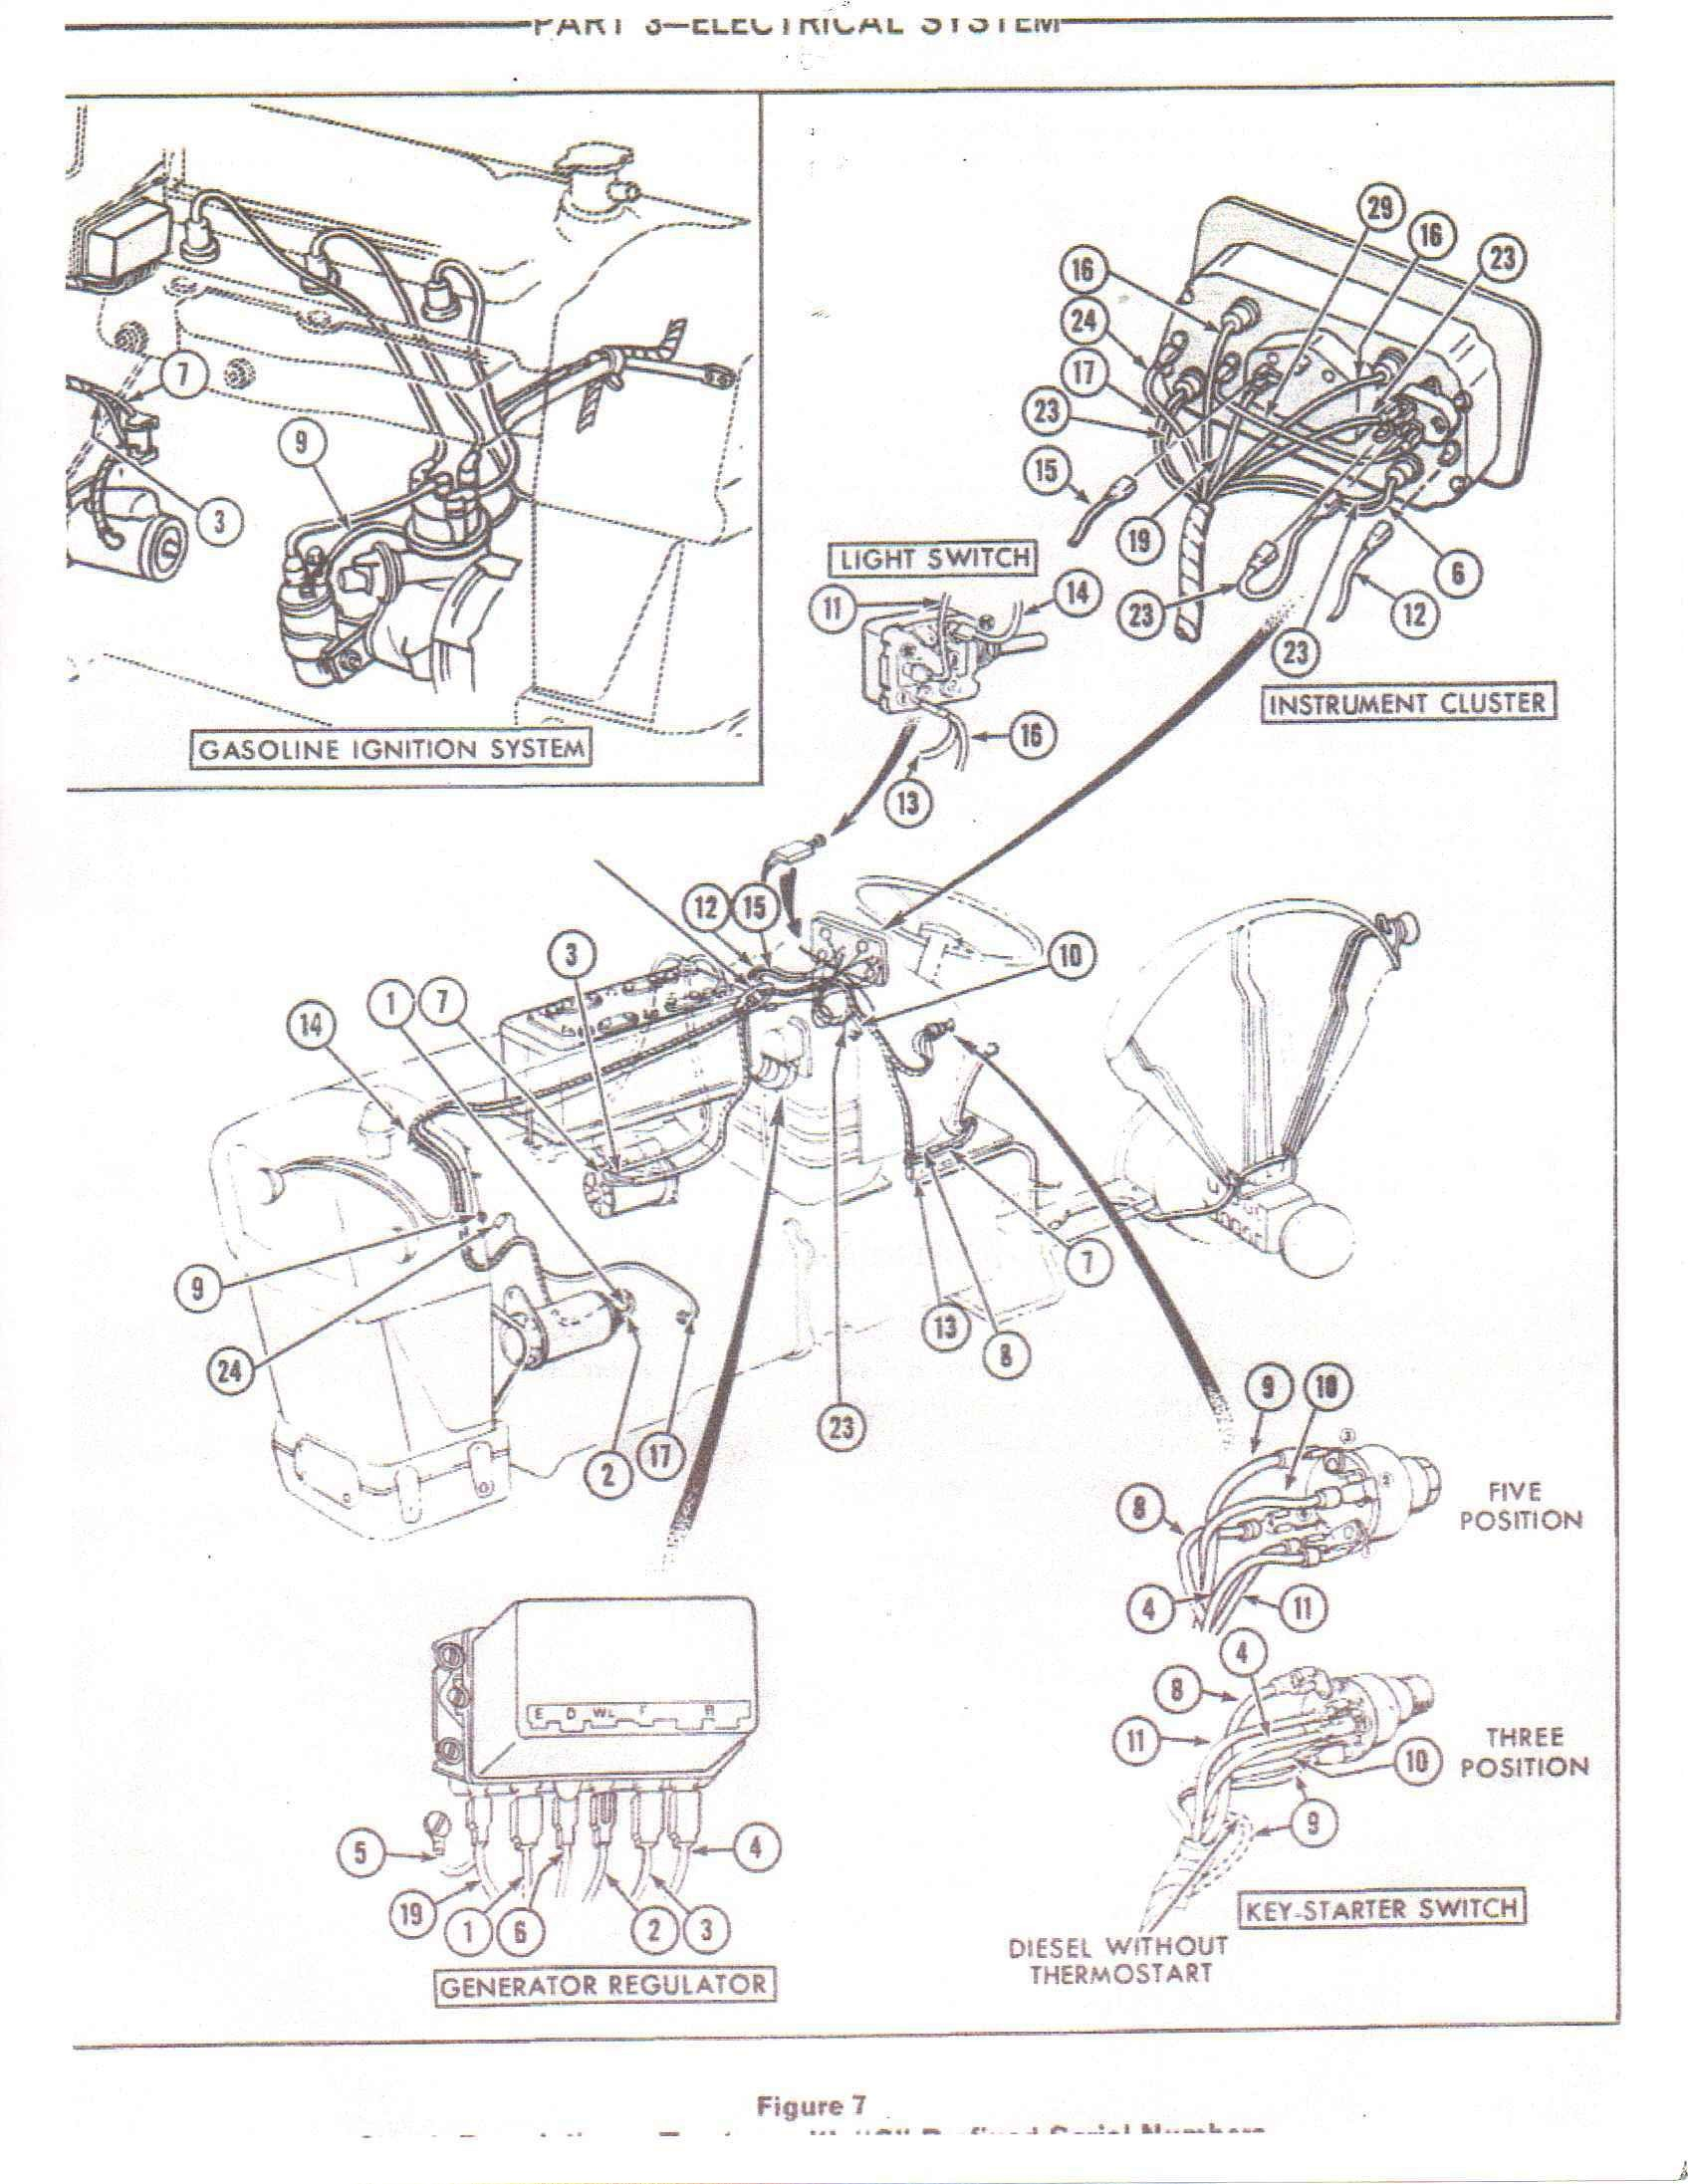 ford 3910 electrical diagram basic guide wiring diagram u2022 rh  hydrasystemsllc com 3910 Ford Tractor Owners Manual Ford 7600 Tractor